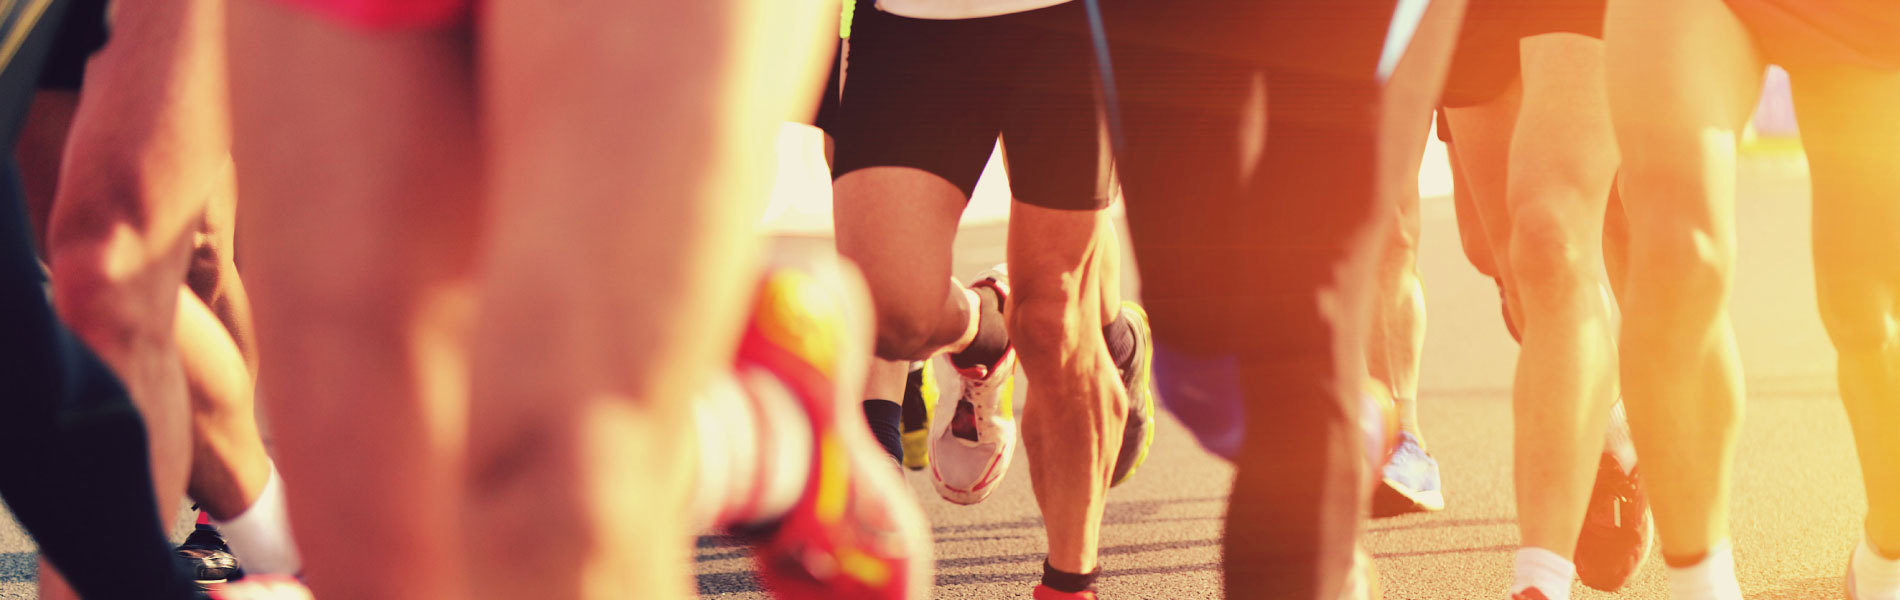 How_to_Train_for_your_First_Half_Marathon_1900x600.jpg